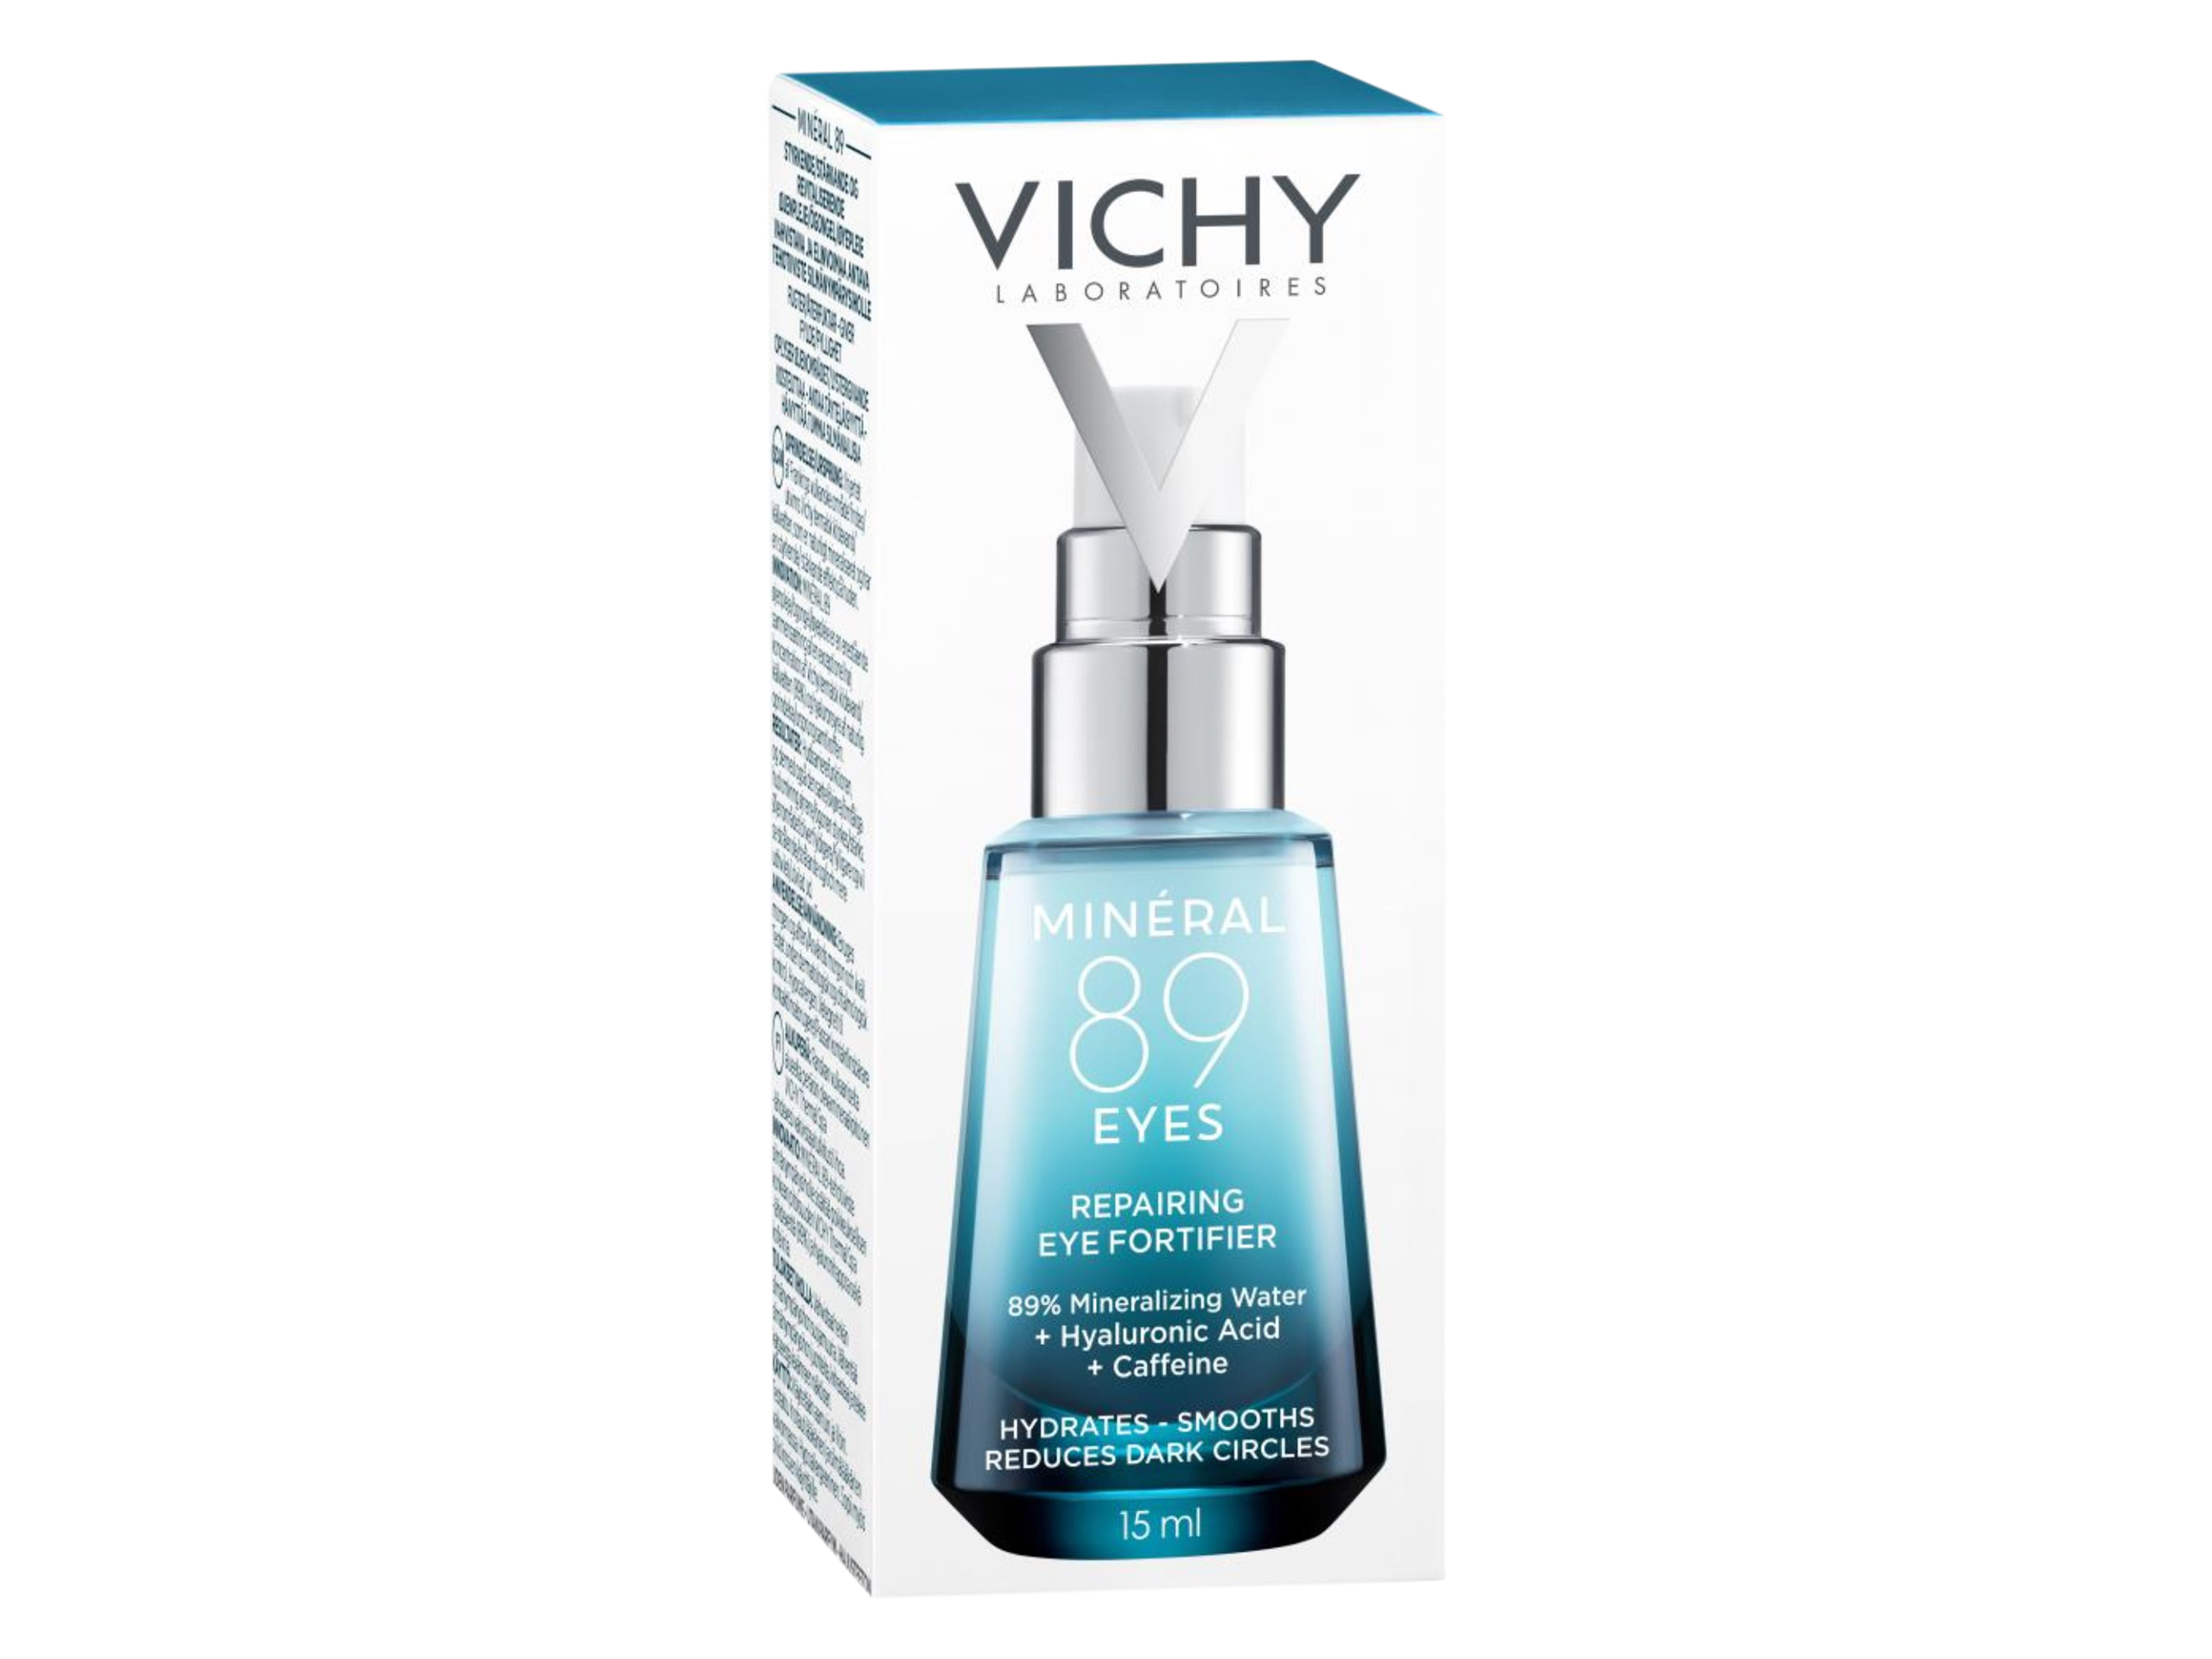 Vichy Mineral 89 Eyes, 15 ml